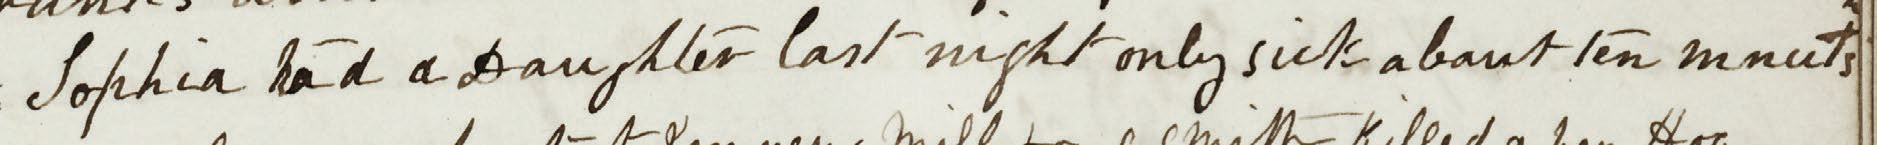 Sophia had a Daughter last night. Only sick about 10 [minutes] 27 October 1863